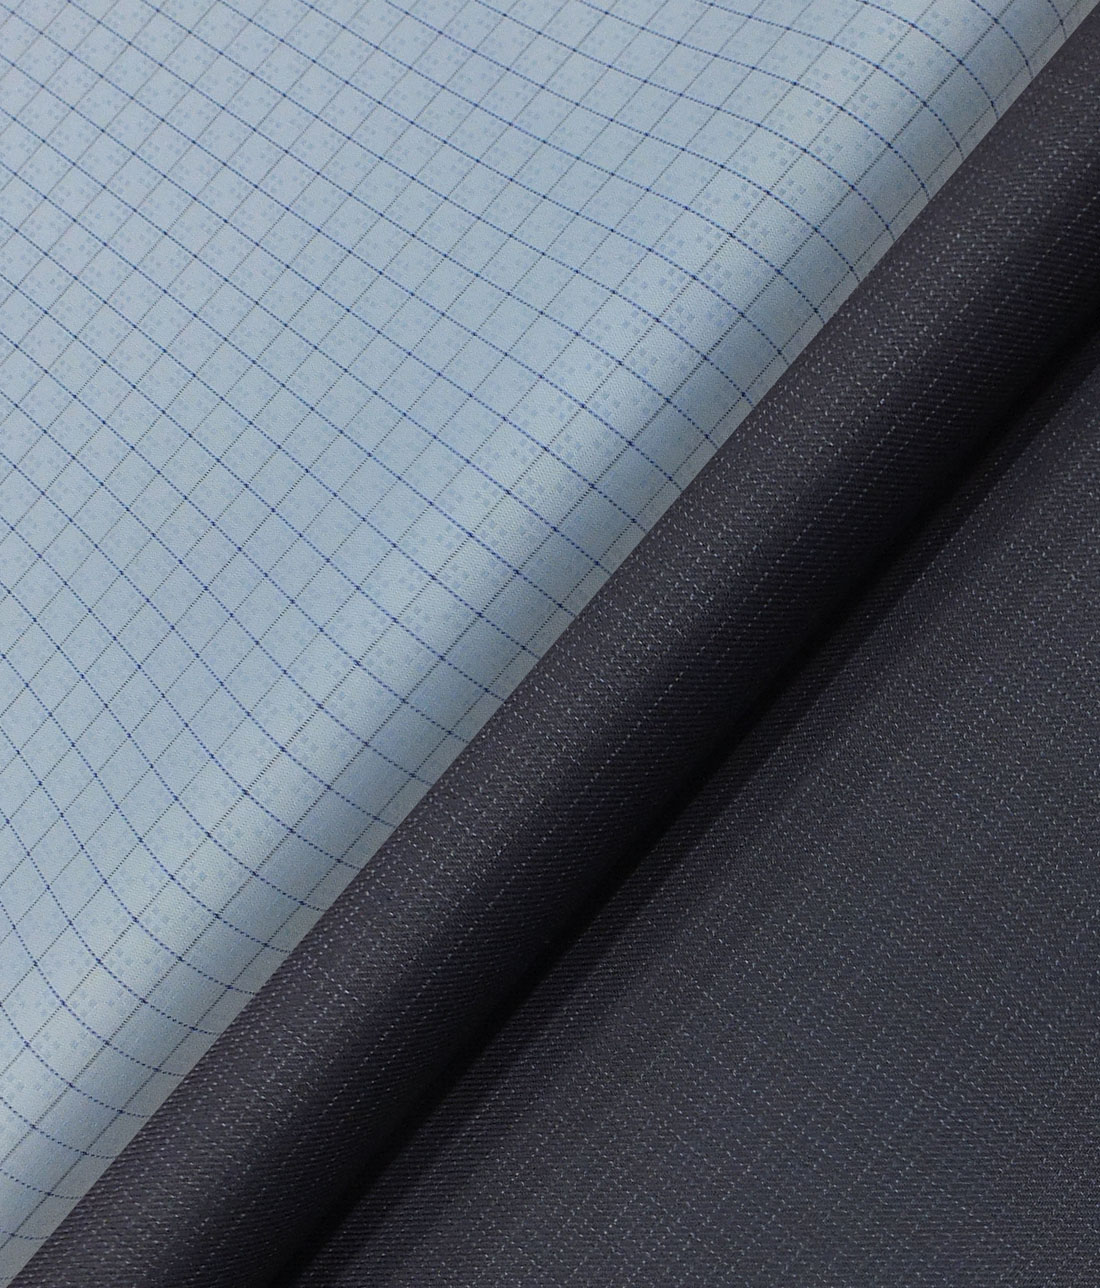 91959fbf4 Raymond Dark Navy Blue Self Design Trouser Fabric With Exquisite Sky Blue  Checks Shirt Fabric (Unstitched)